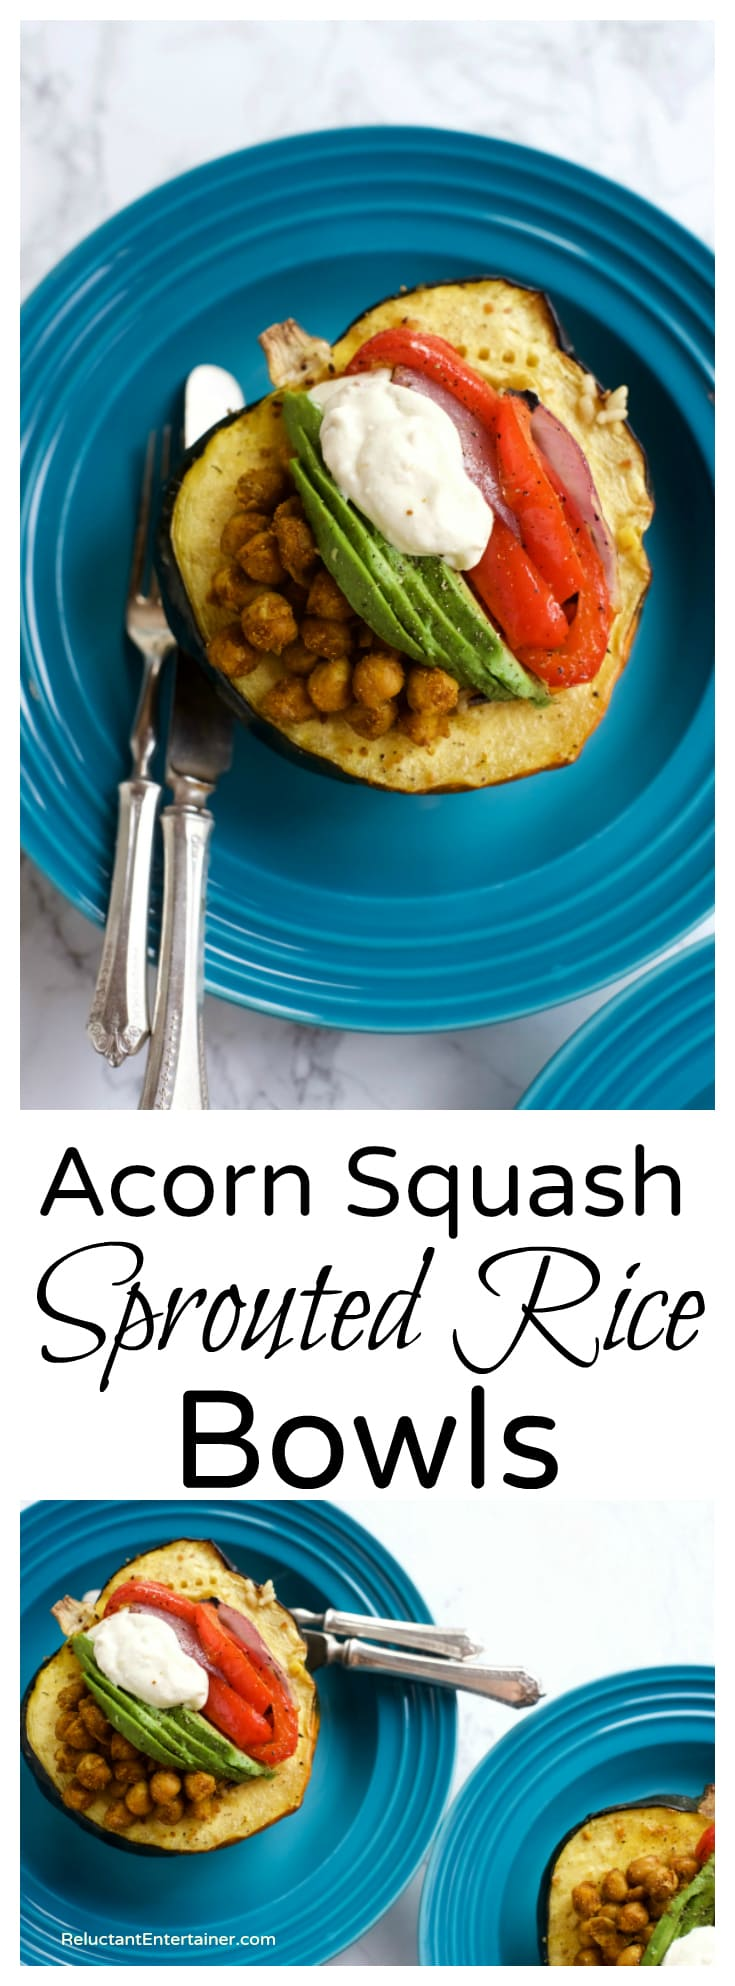 Acorn Squash Sprouted Rice Bowls